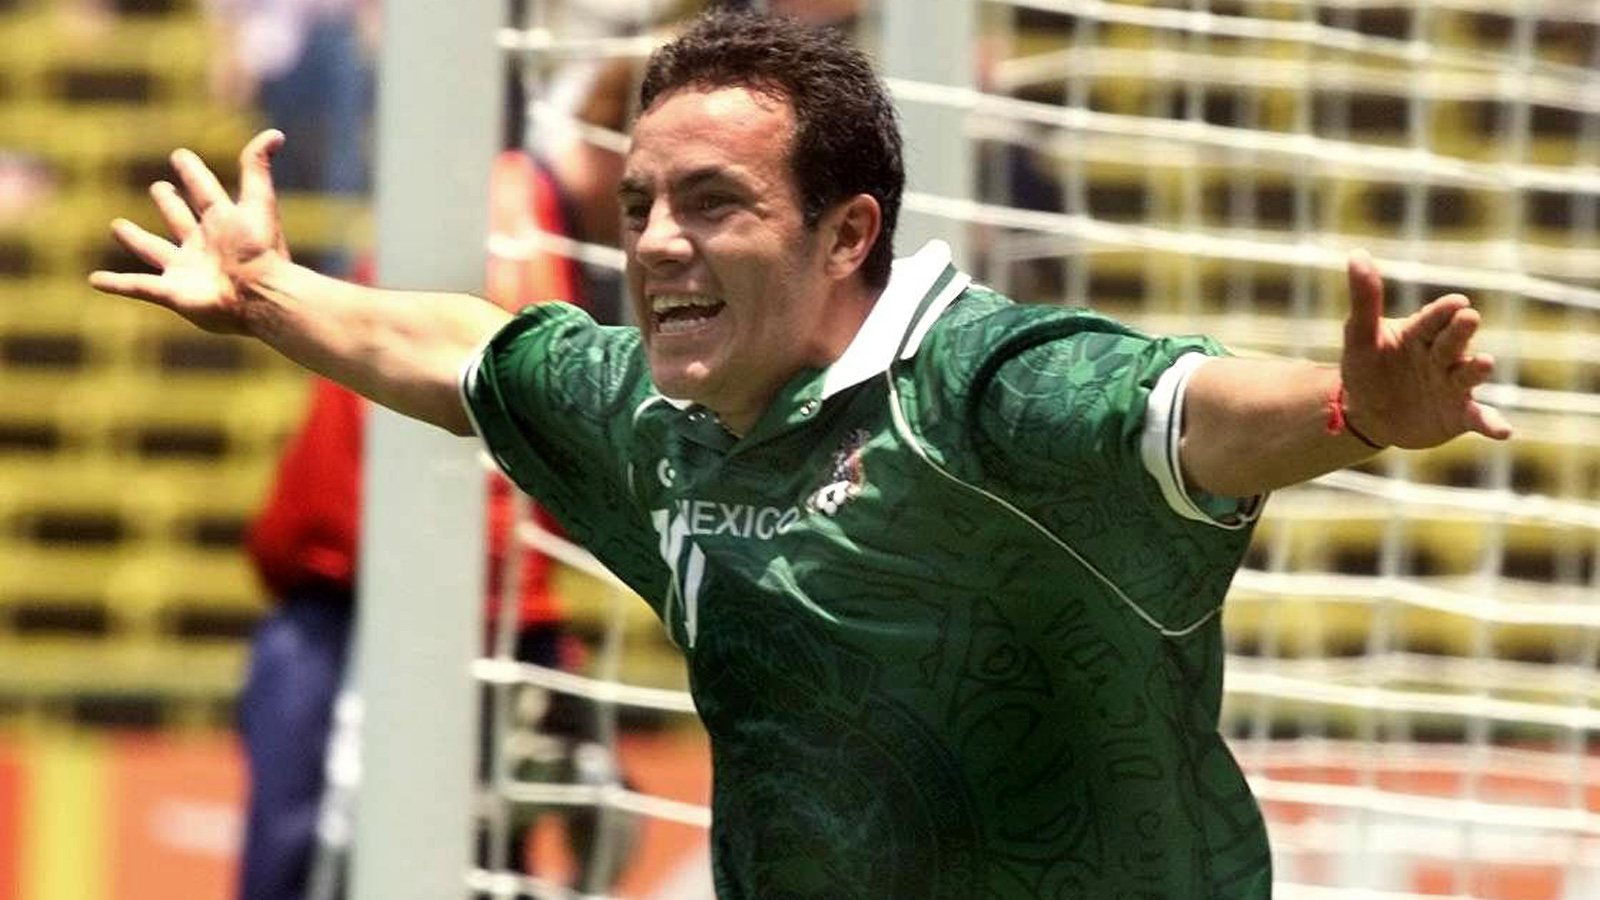 Blanco celebrates his golden goal against the USA in the 1999 FIFA Confederations Cup semifinals on his home soil.